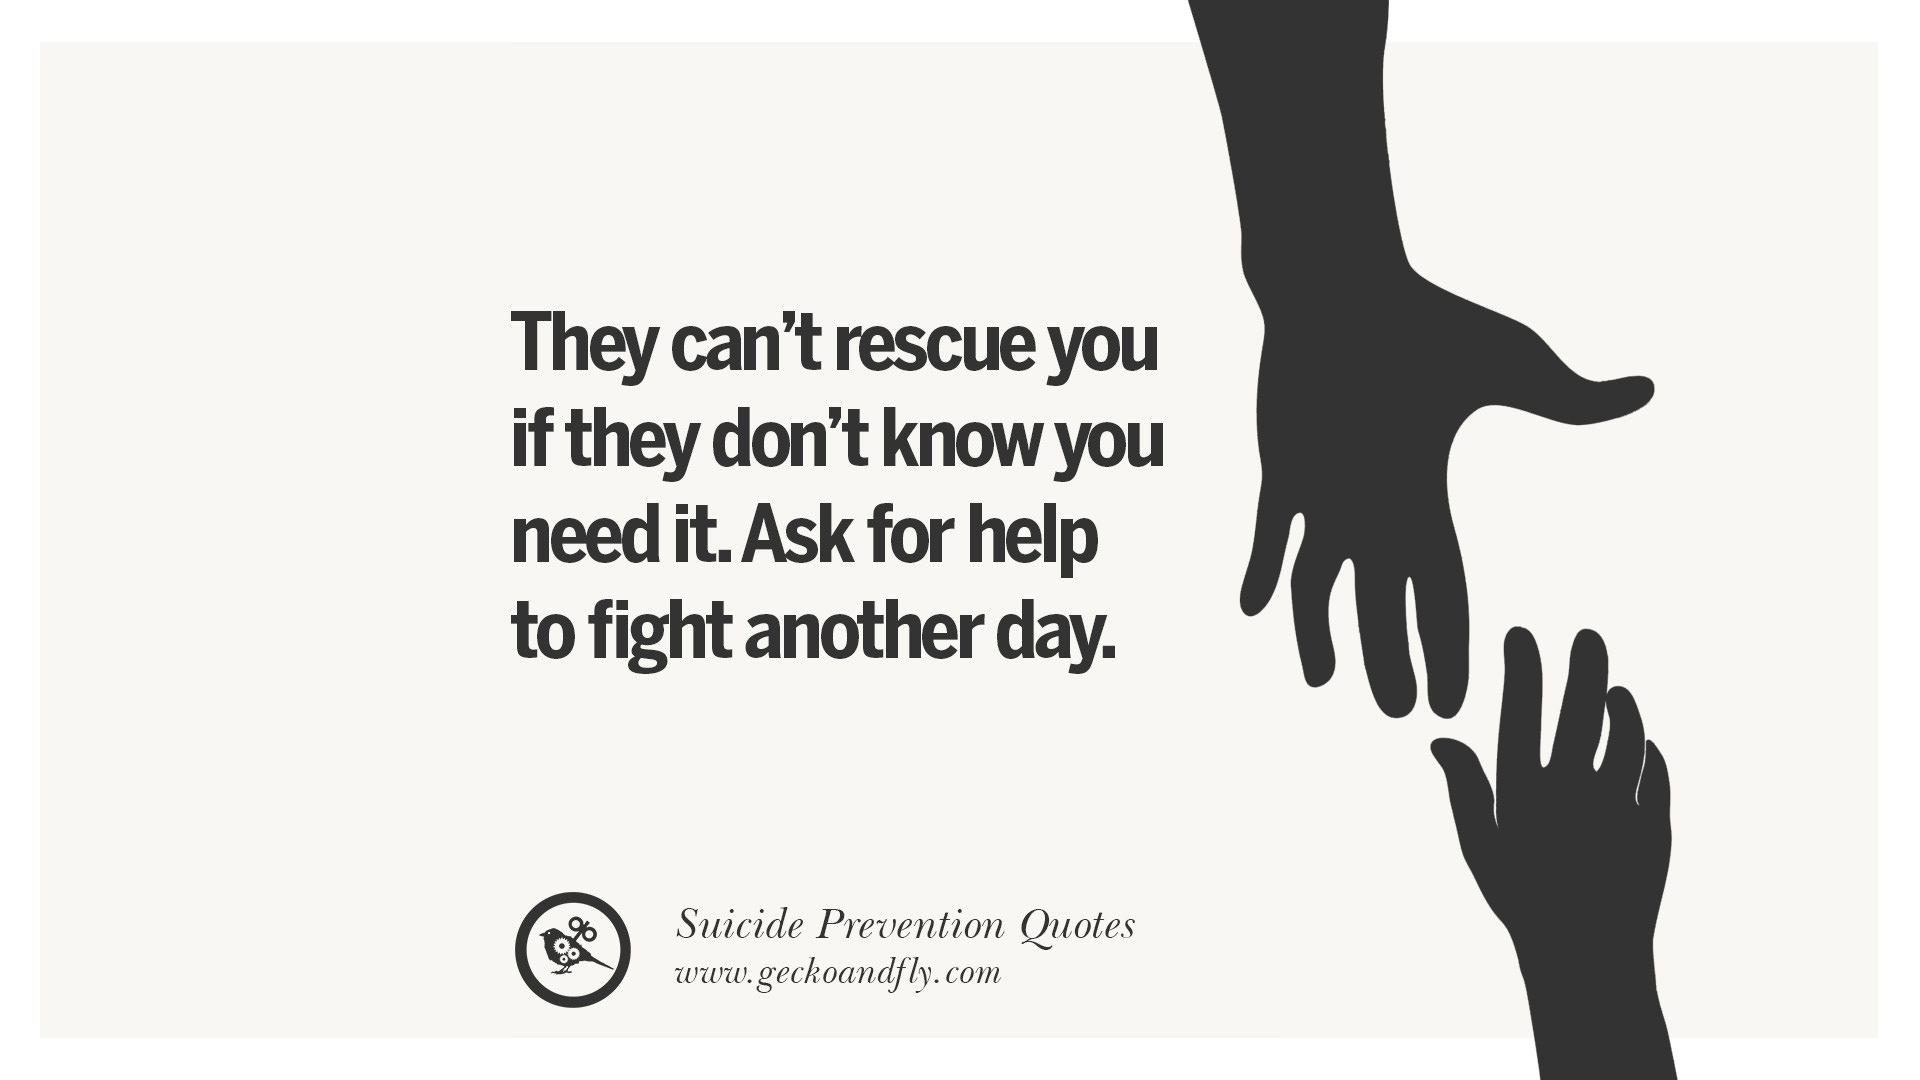 Anti Suicide Quotes 30 Helpful Suicidal Prevention Ideation Thoughts And Quotes